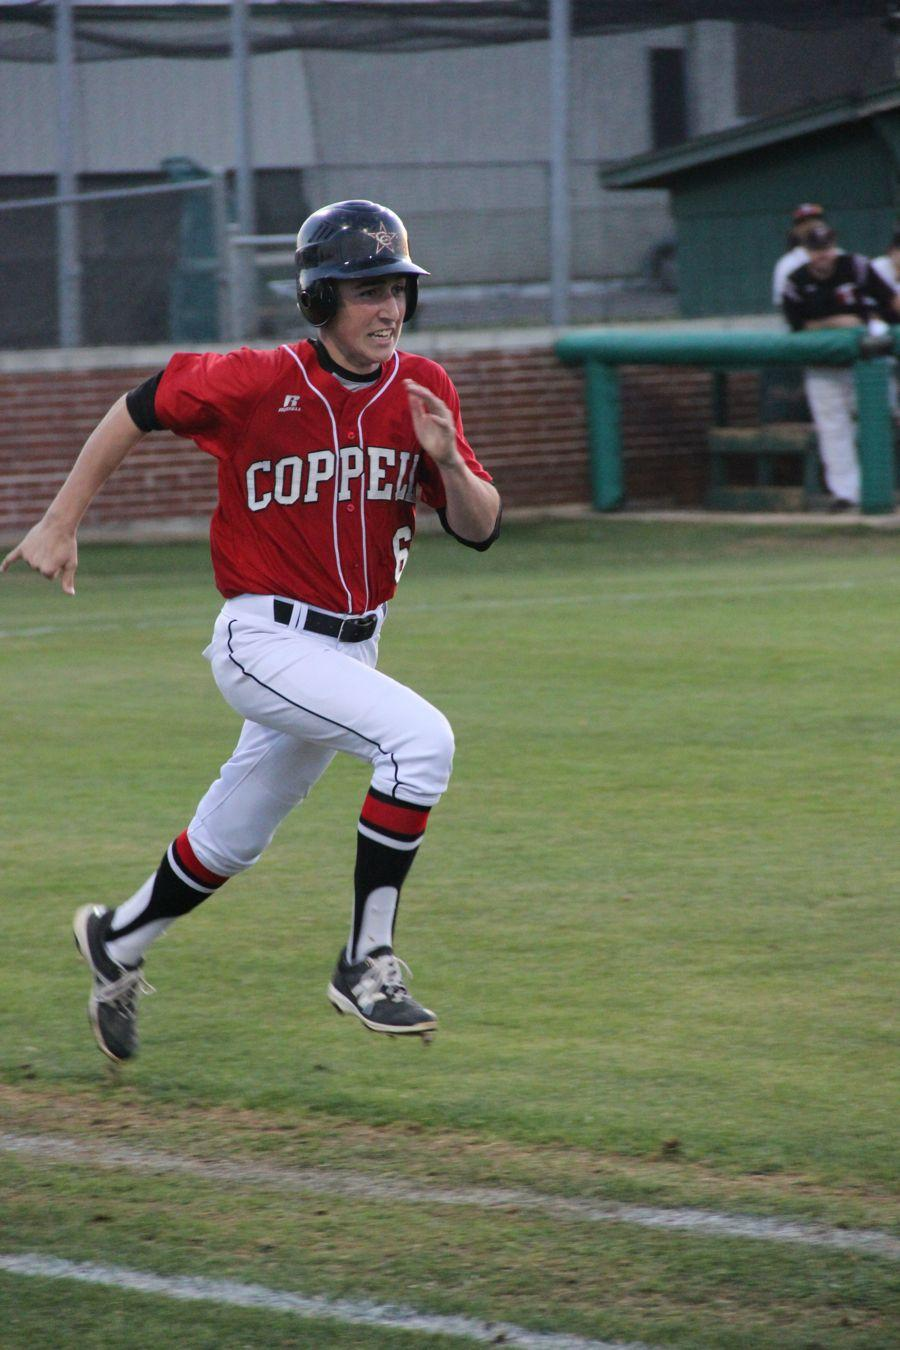 Coppell+High+School+junior+Nathan+Reedy+runs+to+first+base+during+the+baseball+game+on+Monday.+Cowboys+beat+the+Trojans+8-2+at+Trinity+High+School.+%0A